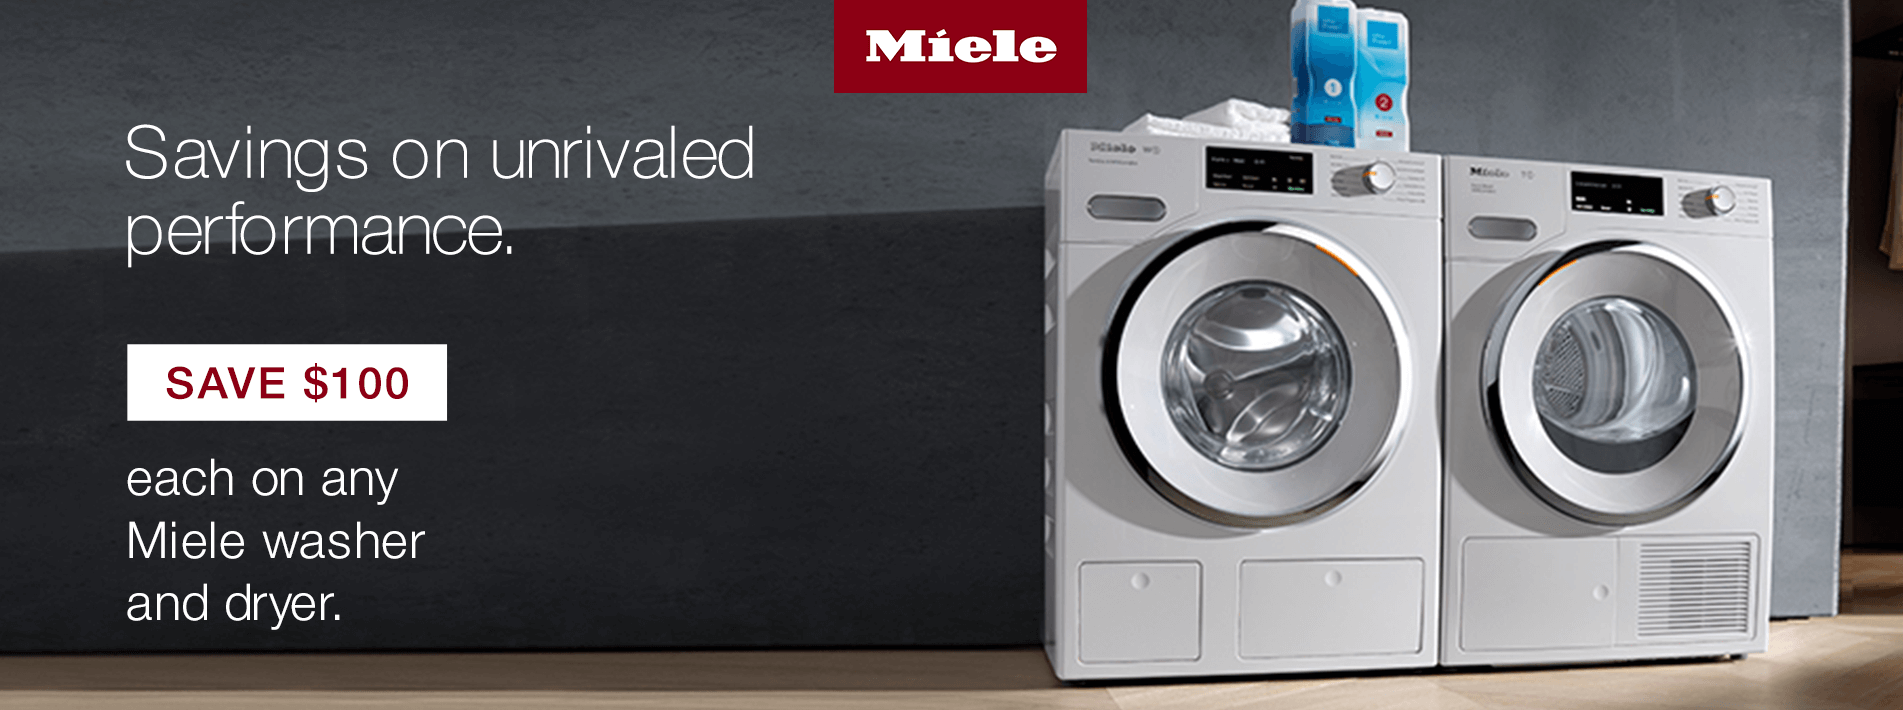 Save $100 each on a select Miele washer and dryer.